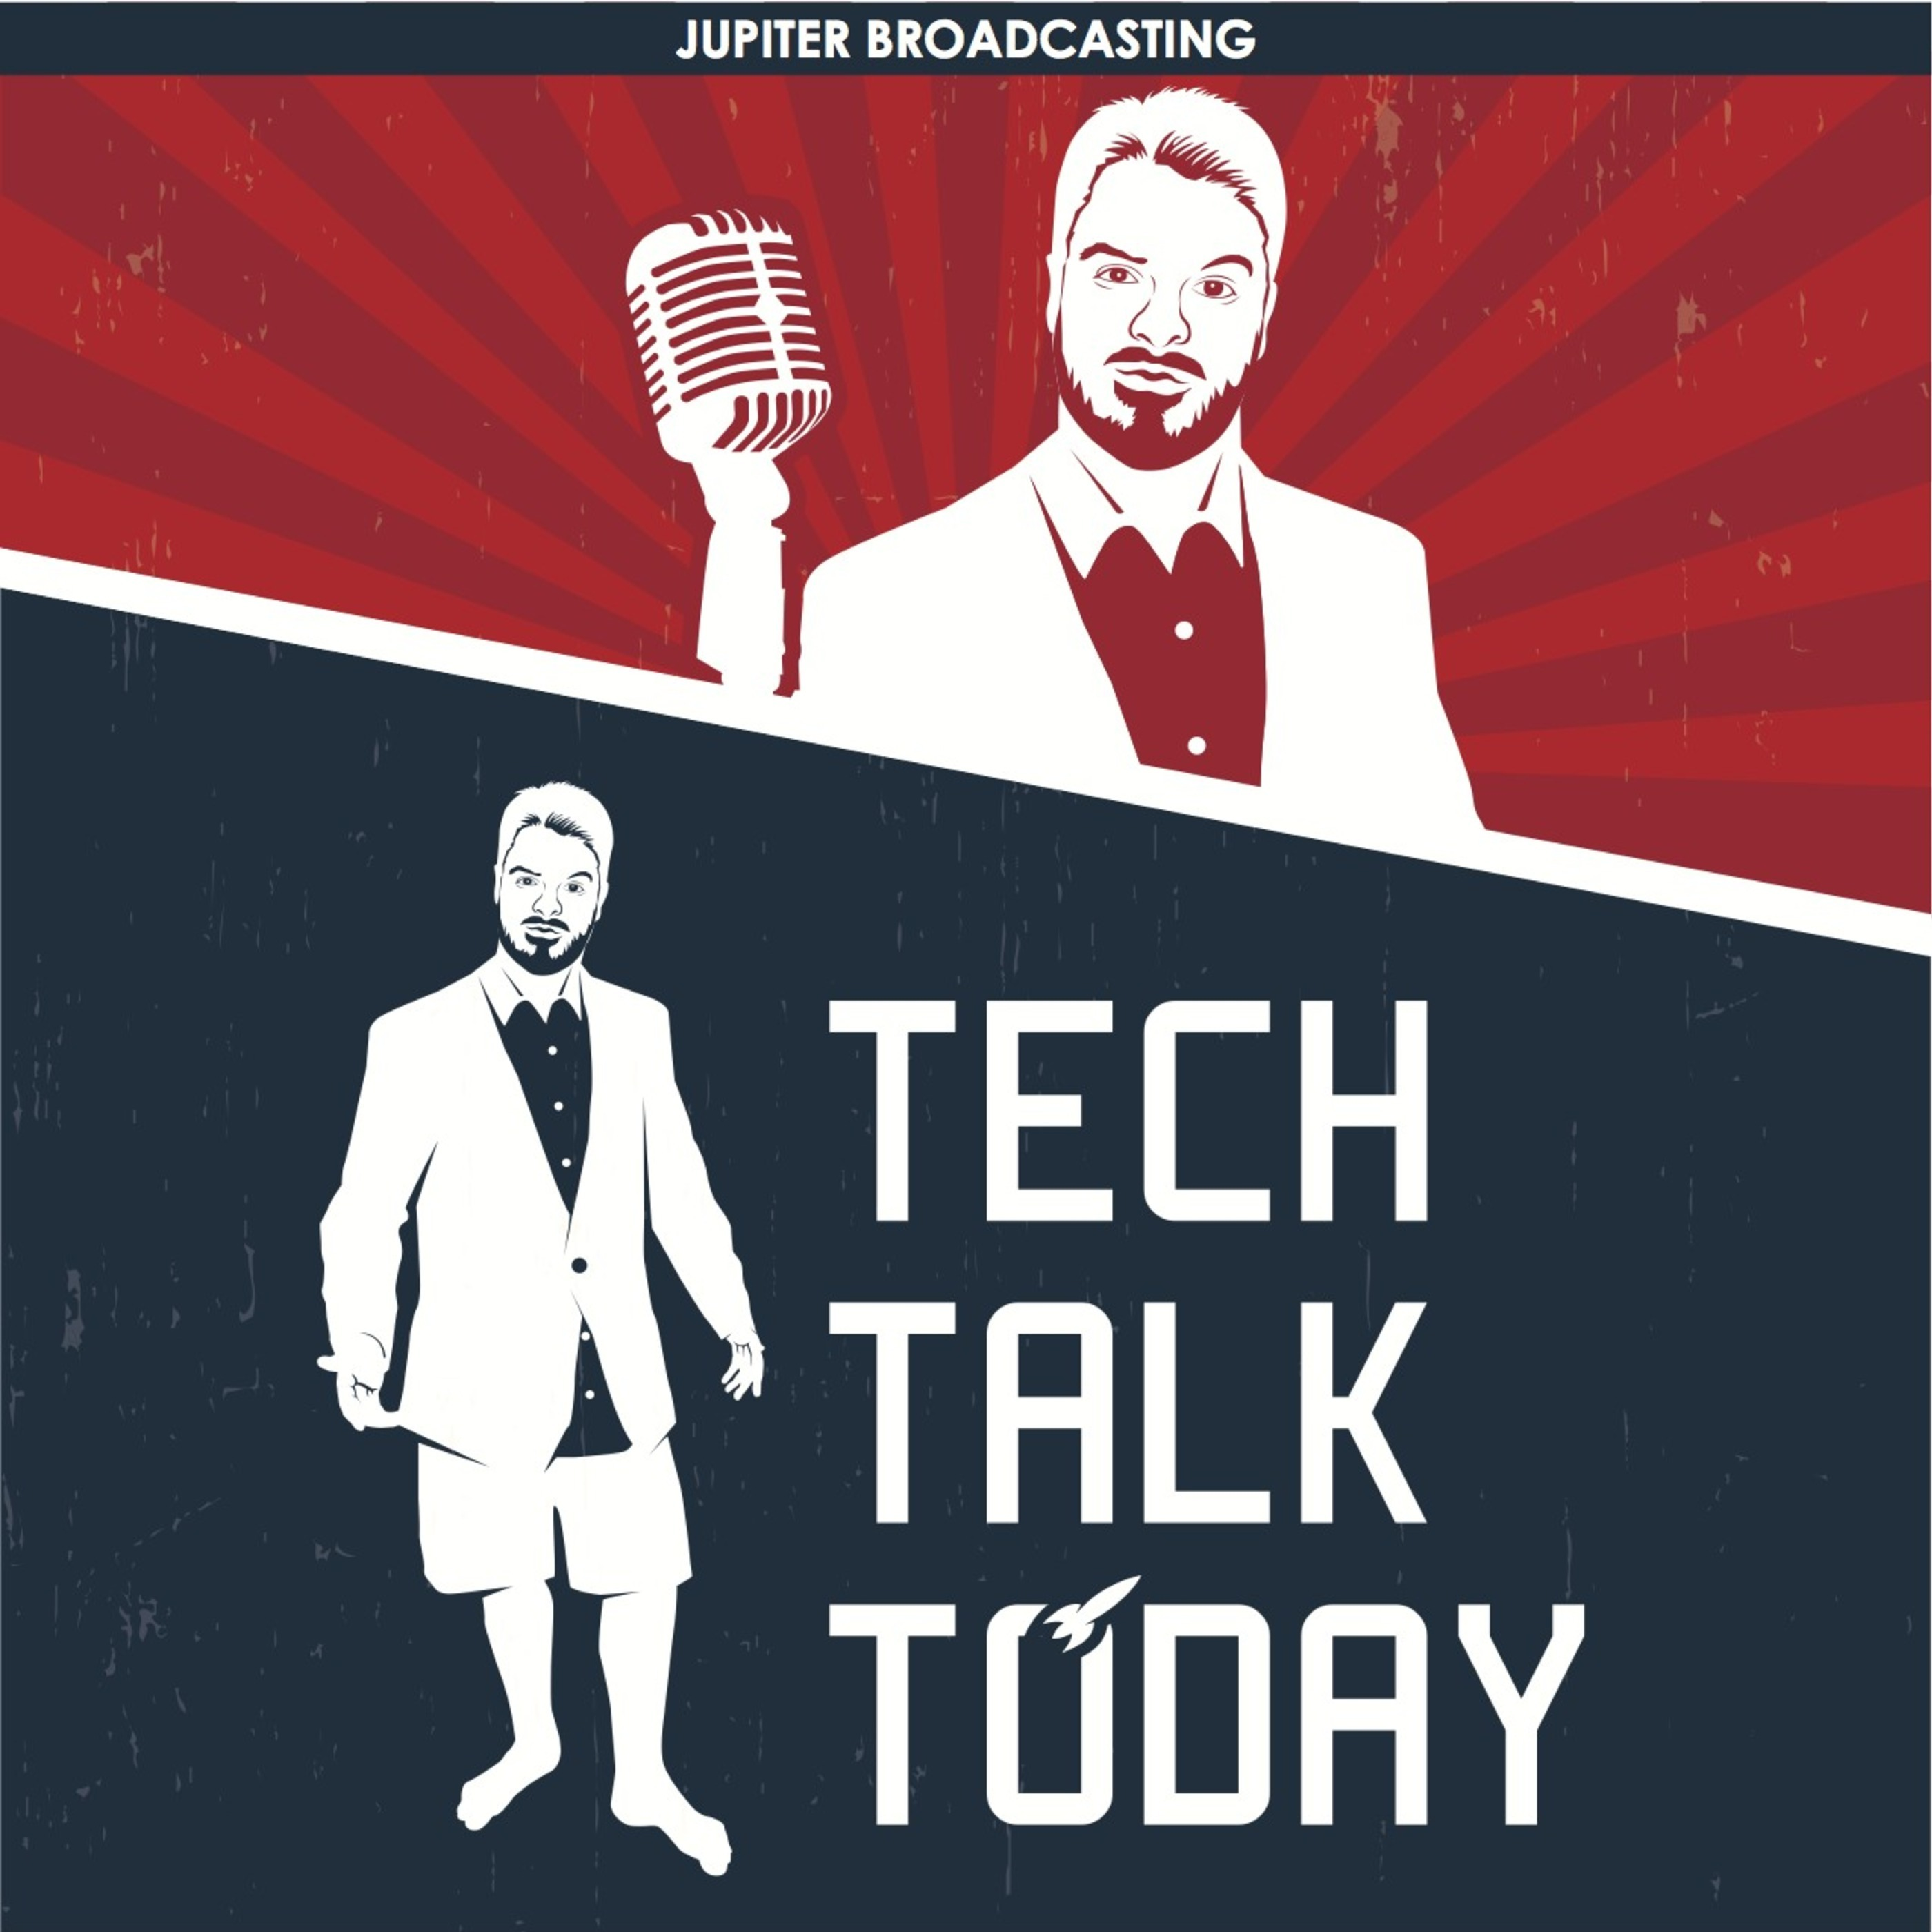 Episode 19: Chris Needs a Vacation | Tech Talk Today 172